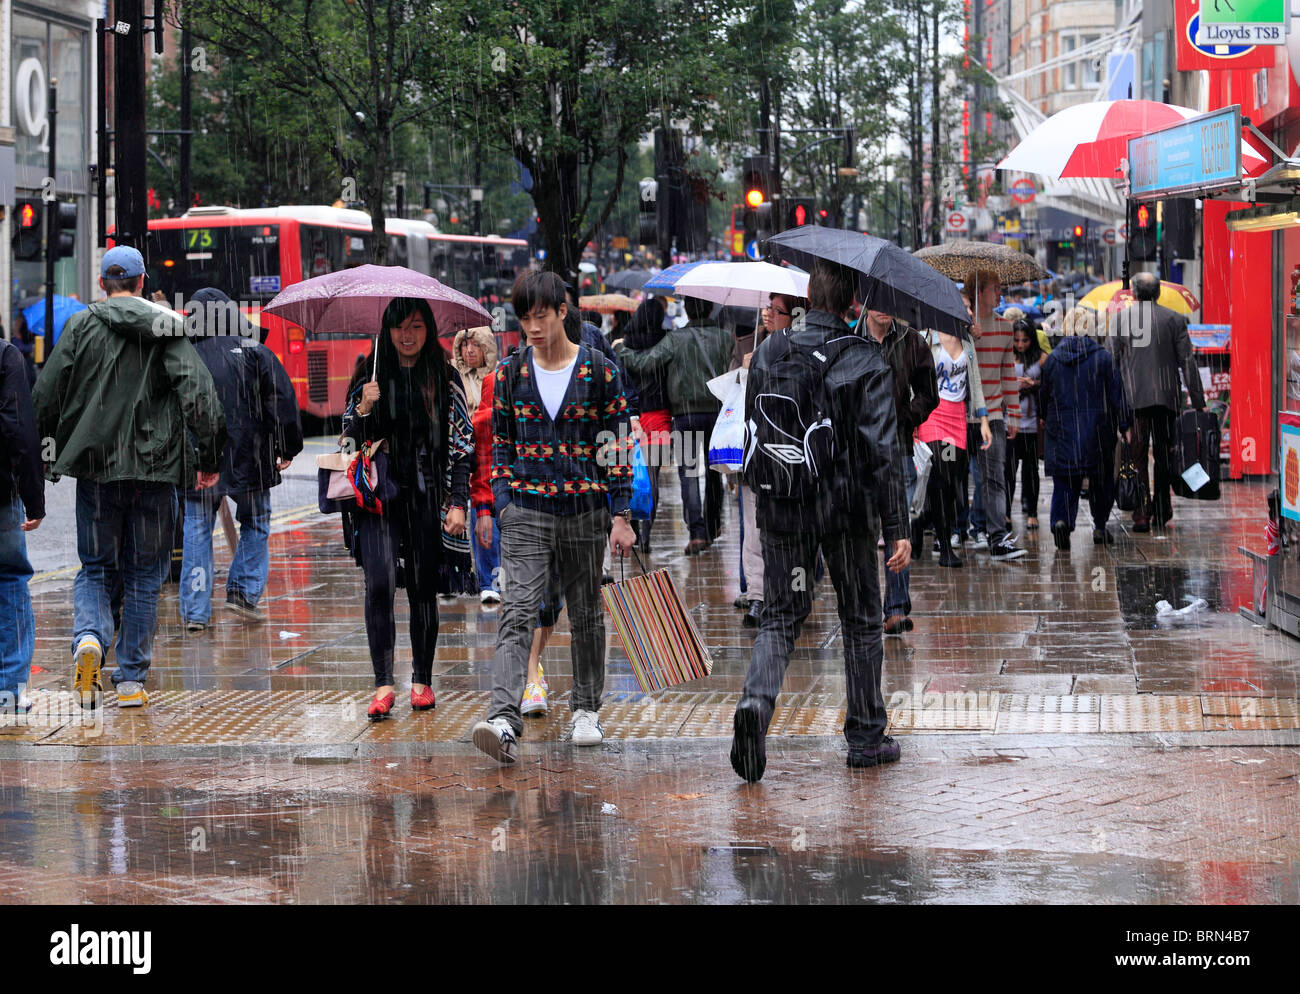 Shopping  on a cold and rainy day. - Stock Image